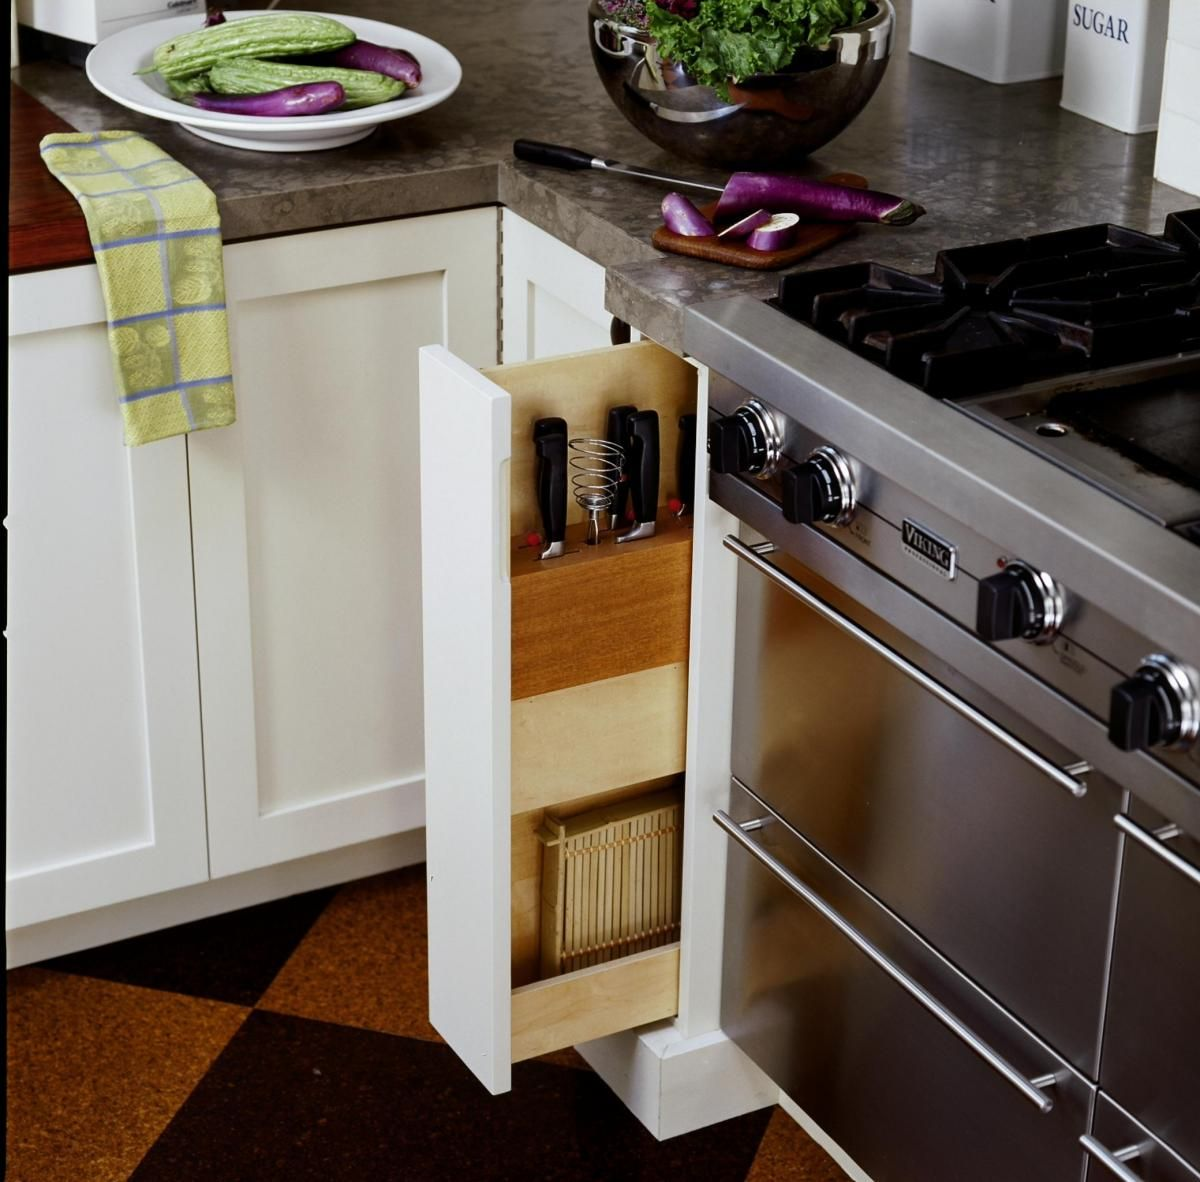 store knives and other kitchen contraptions in the most narrow spaces